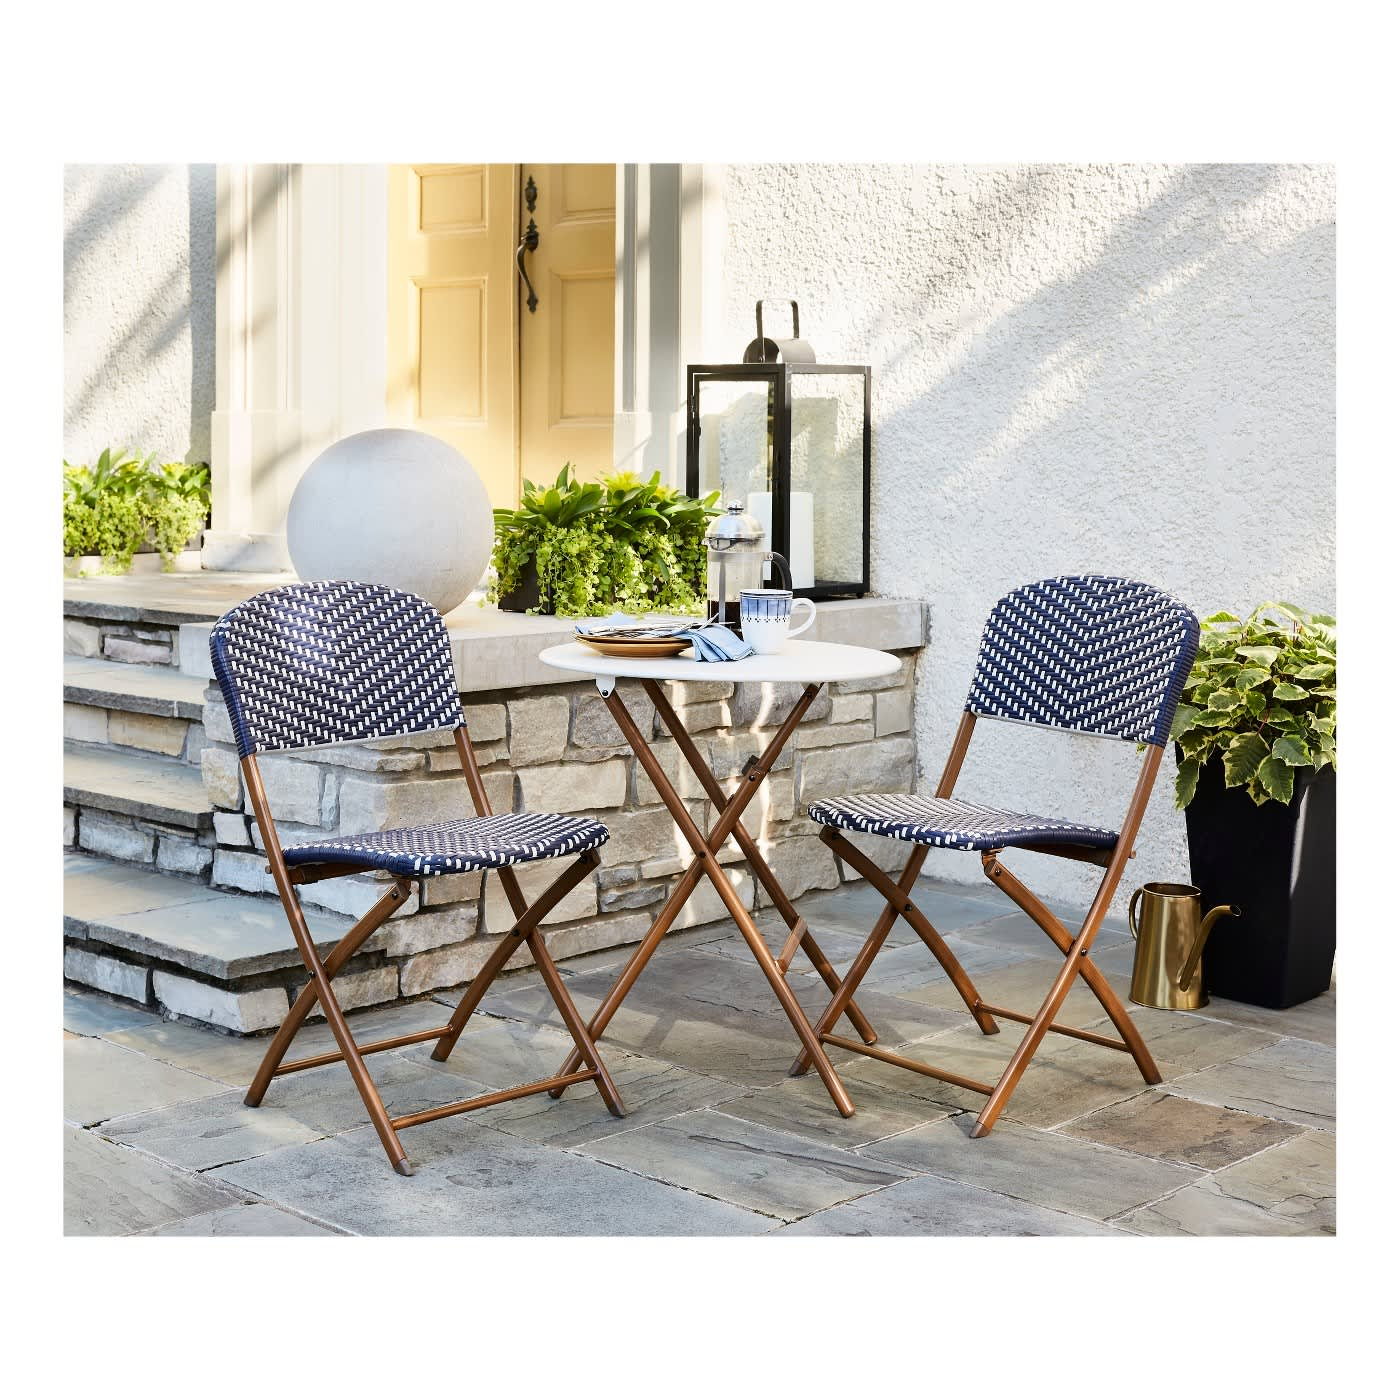 Patio Furniture For Apartments